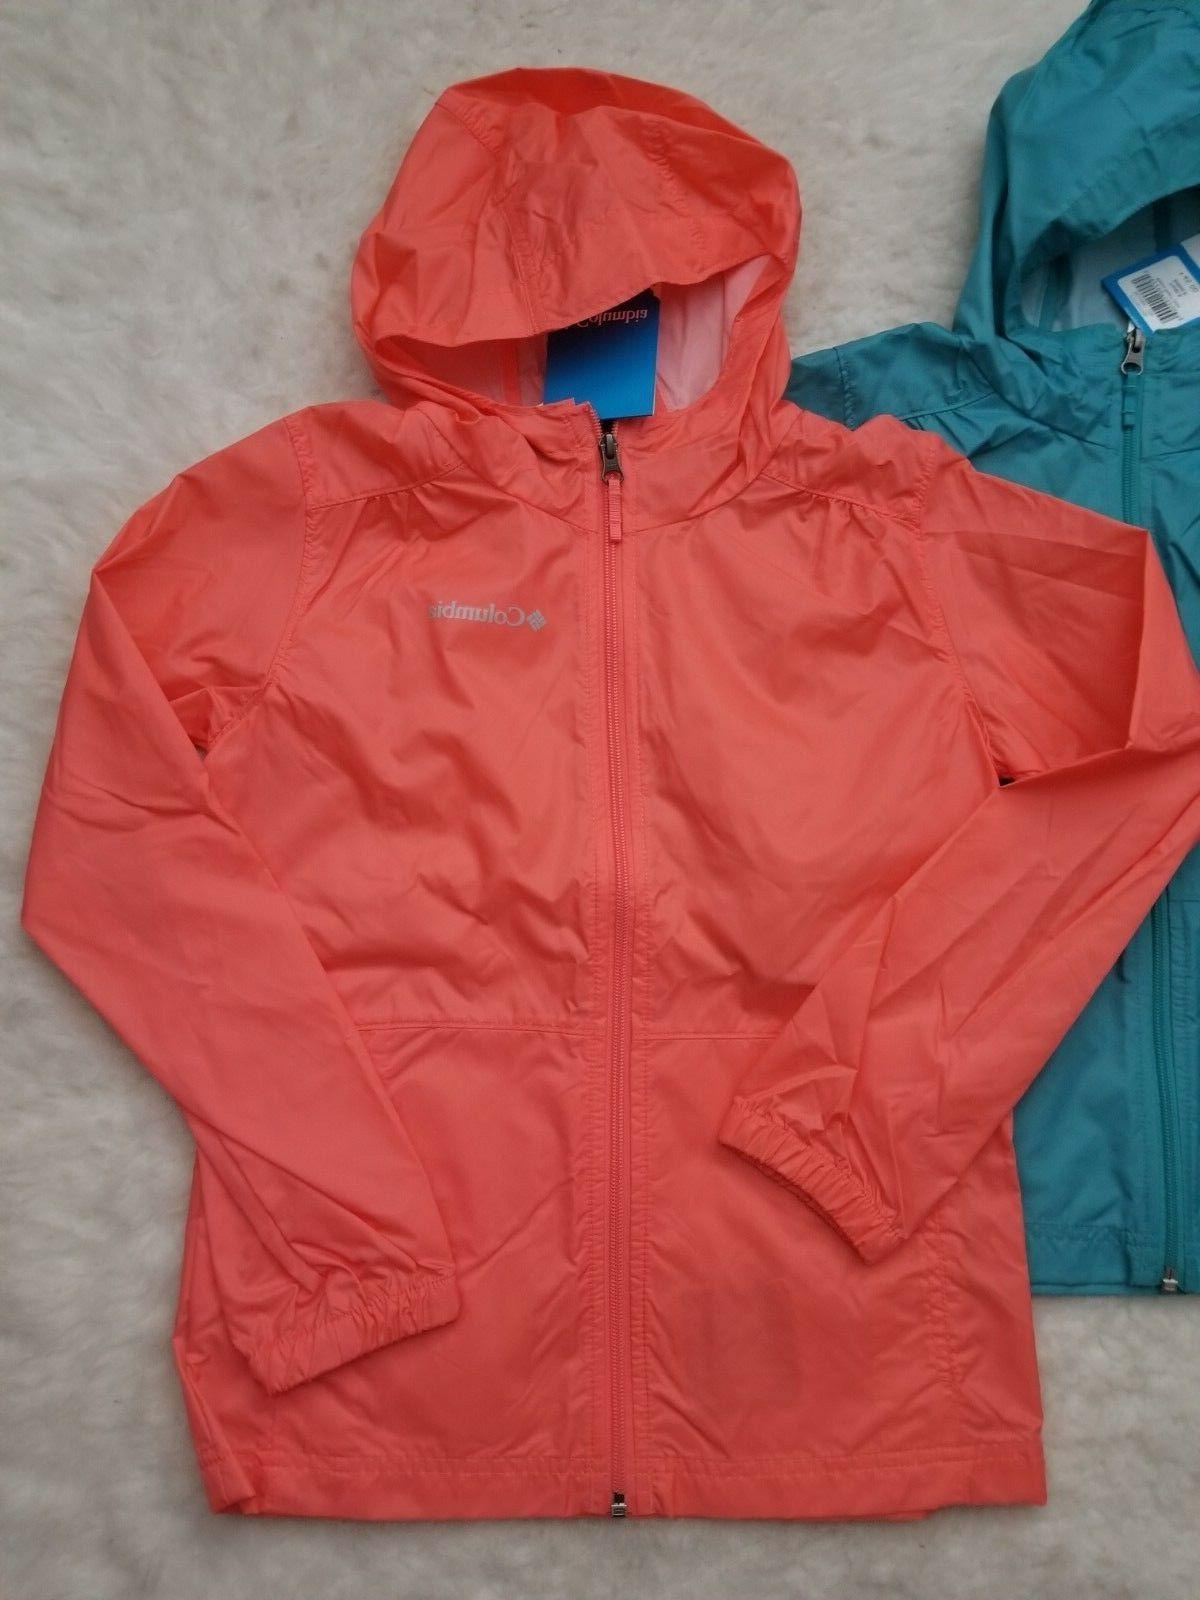 NWT Slippery SELECT & COLOR